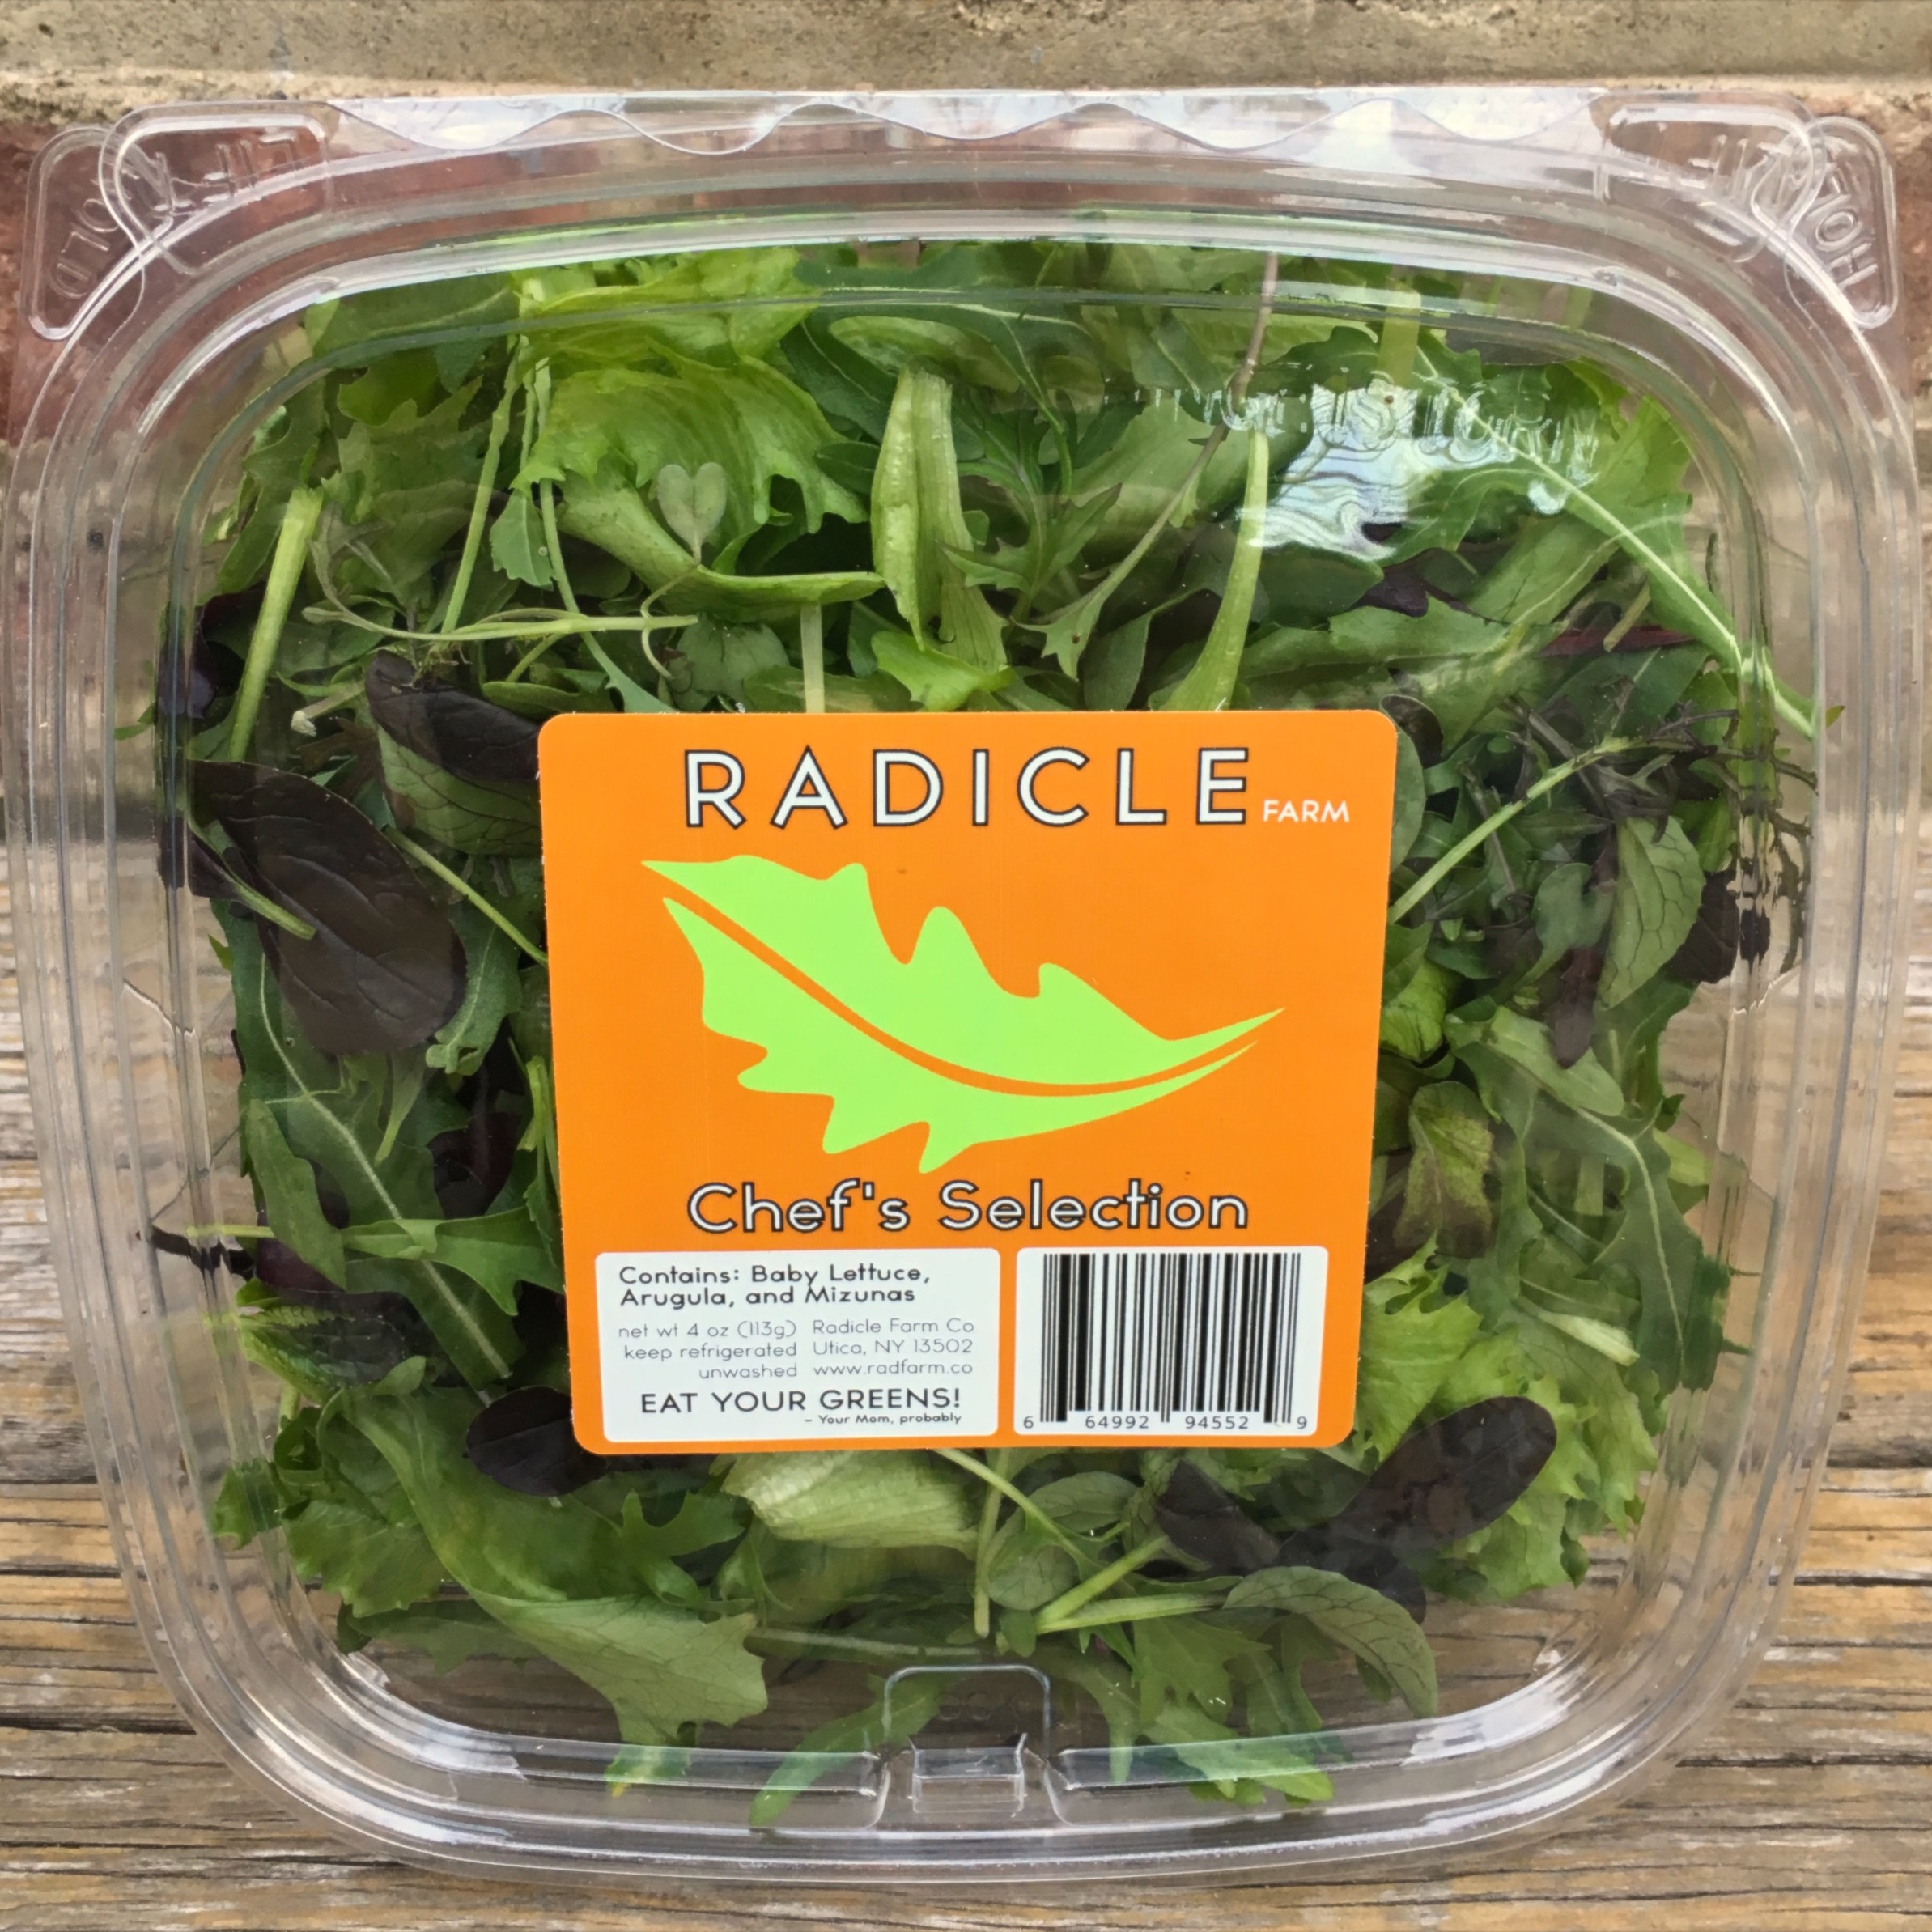 CHEF'S SELECTION - Red & Green Romaine, Arugula, Mizunas, Mustard Greens